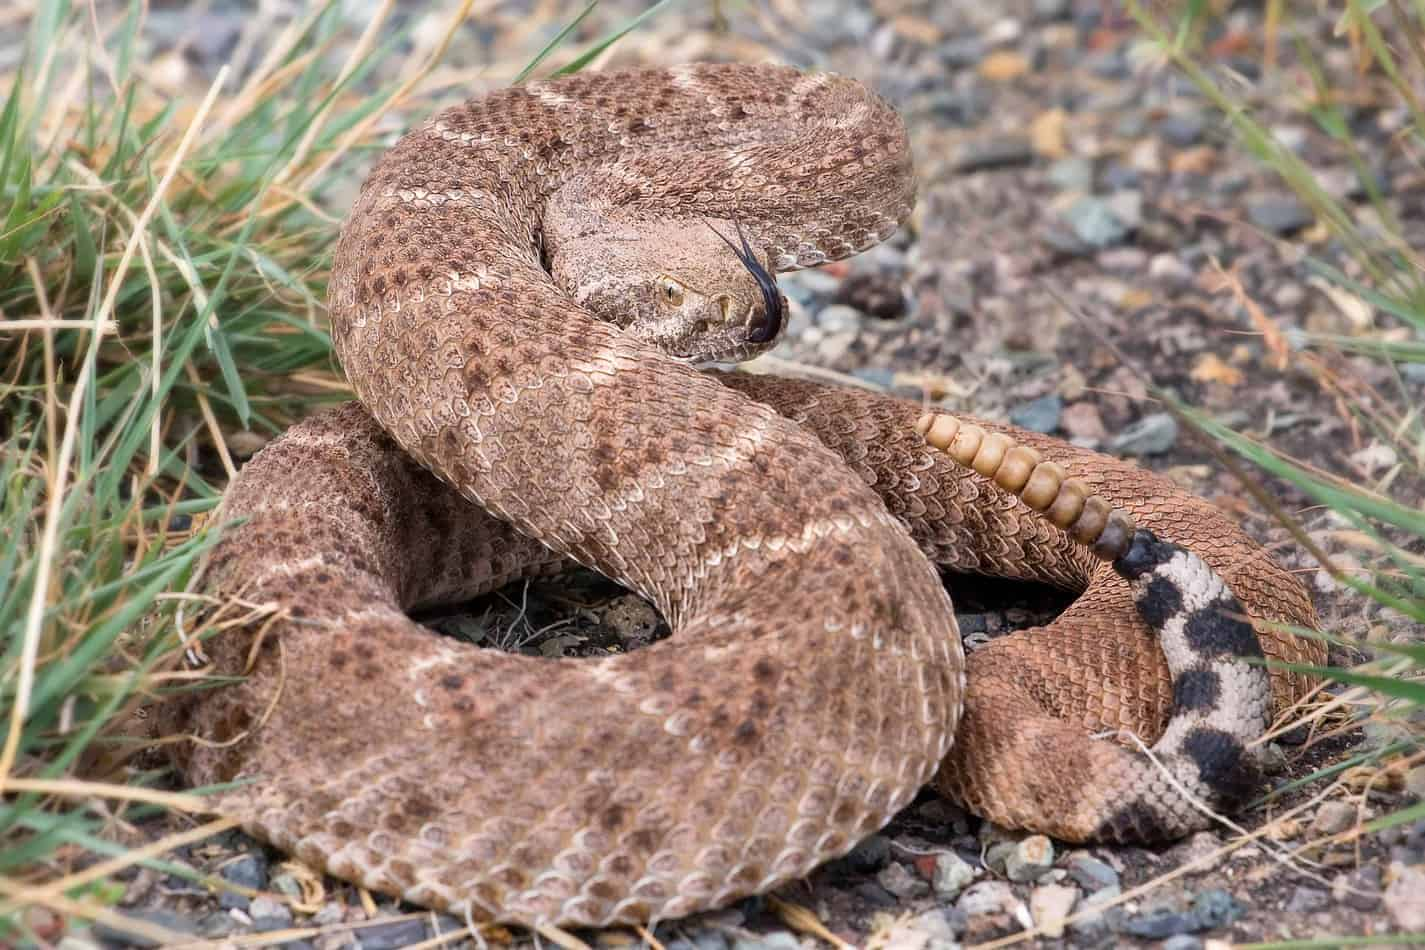 What Happens When a Rattlesnake Bites hat Do You Do if Bitten by a Rattlesnake?